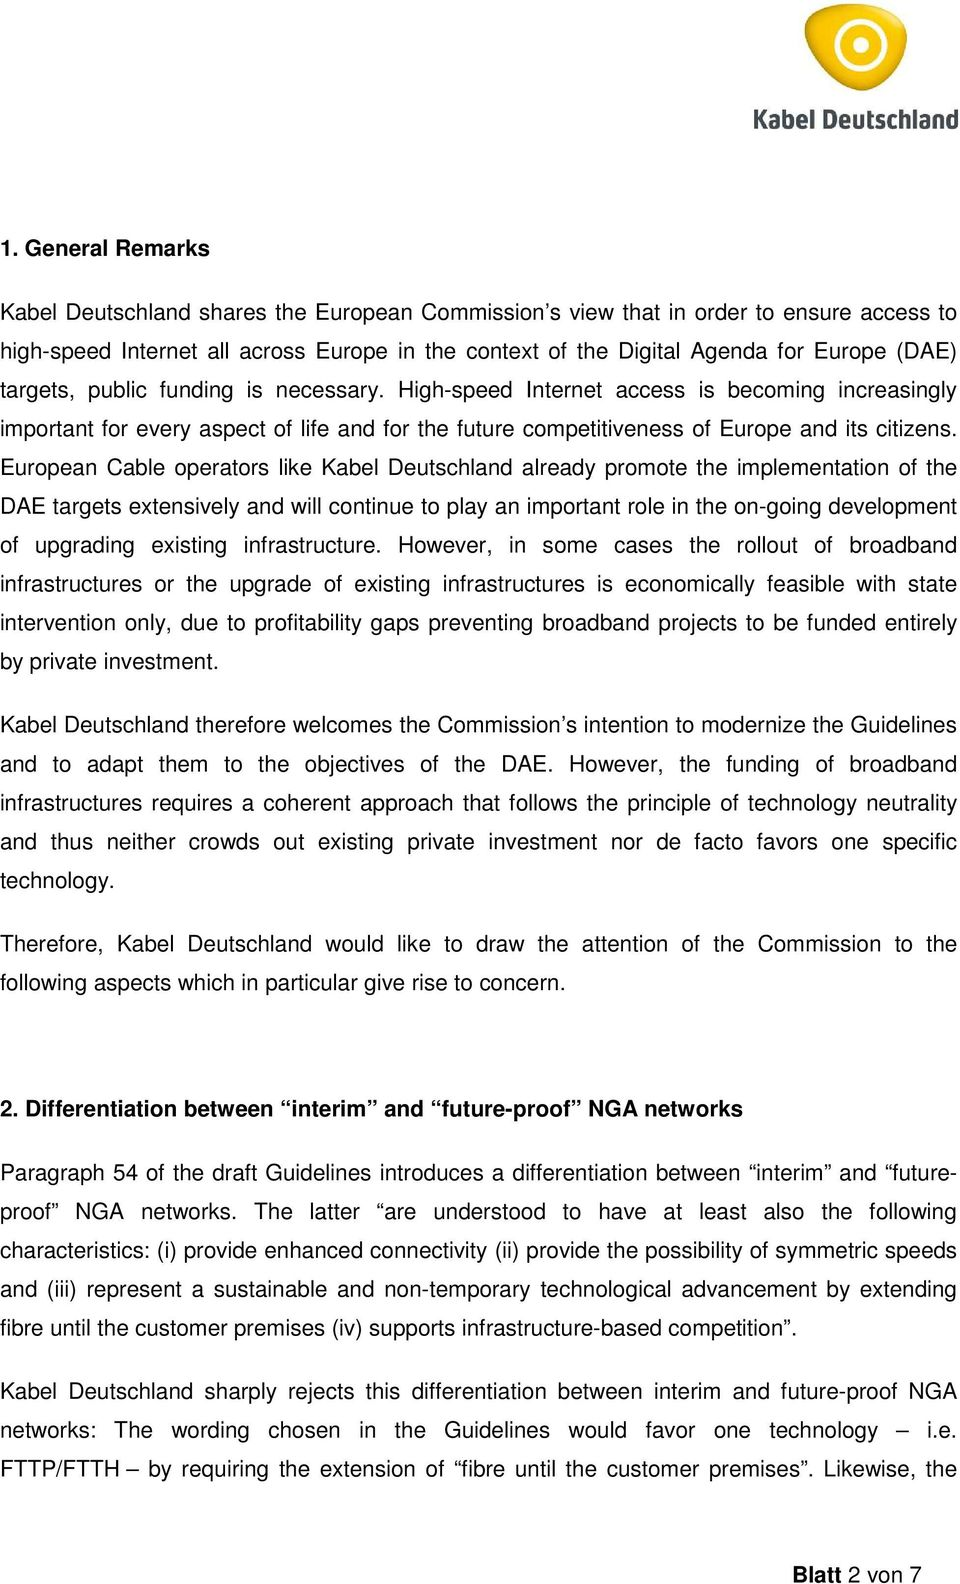 European Cable operators like Kabel Deutschland already promote the implementation of the DAE targets extensively and will continue to play an important role in the on-going development of upgrading